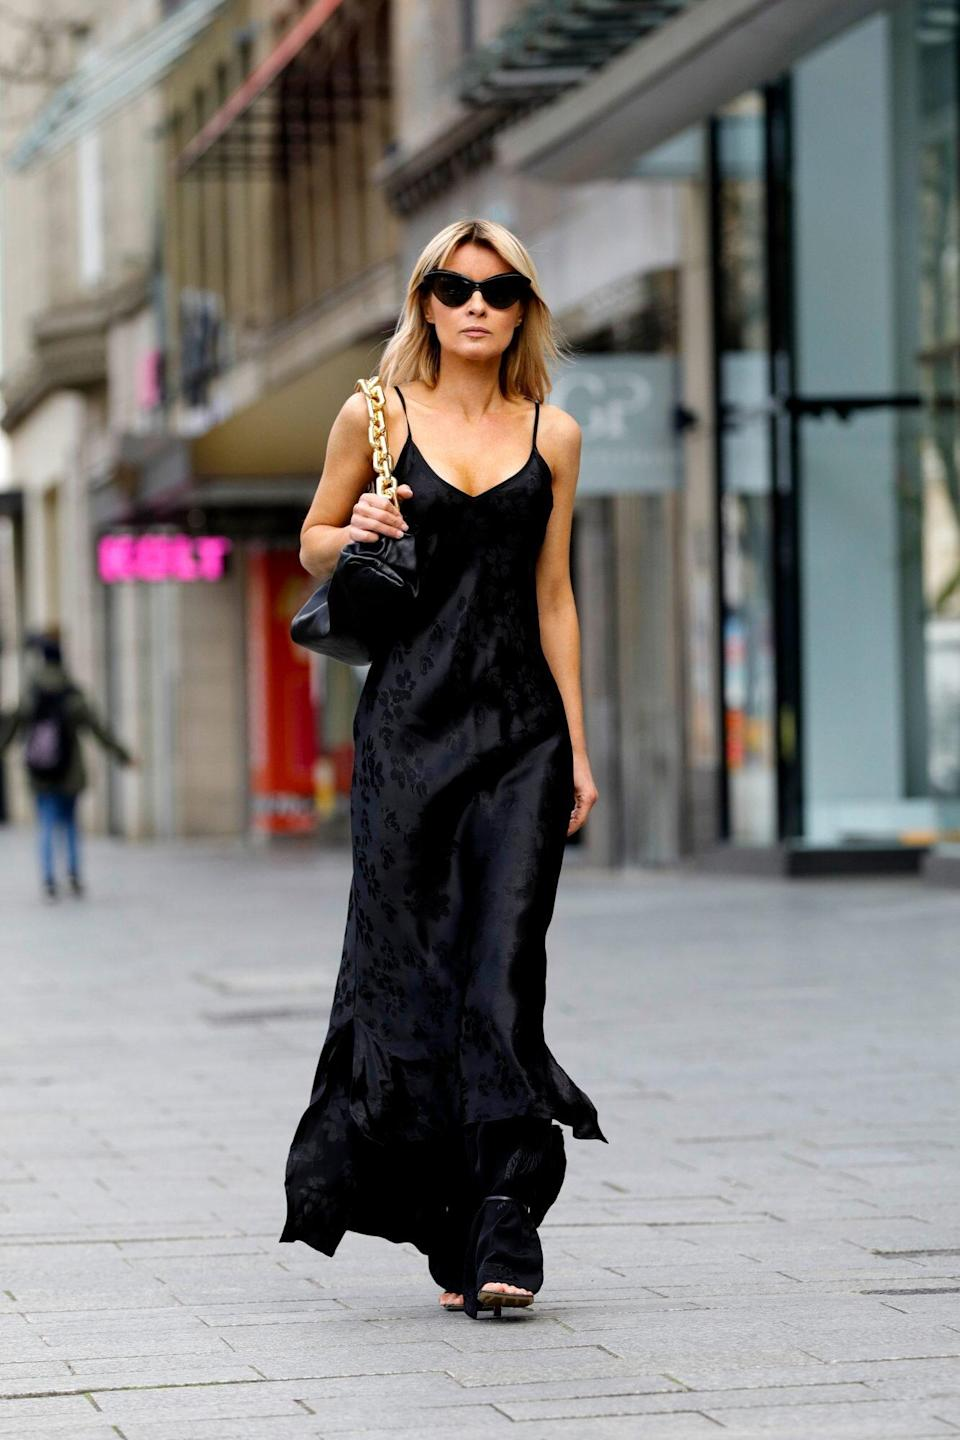 Nordstrom Shoppers Are Convinced They Found the Perfect Black Dress